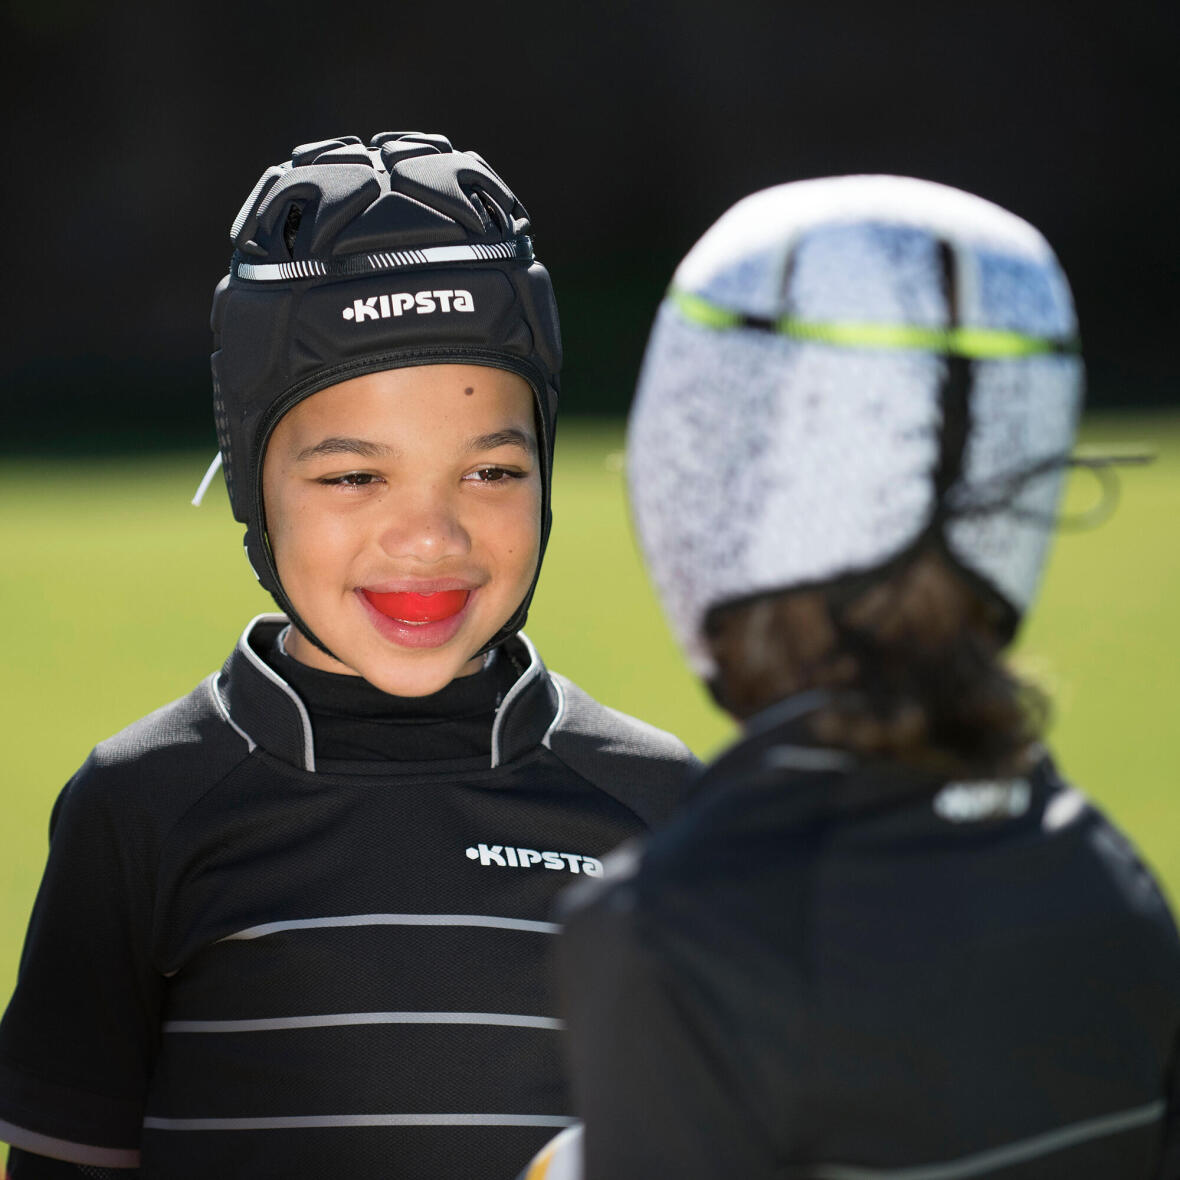 tips-spitting-swimming-goggles-weird-sport-habits-teeth-rugby